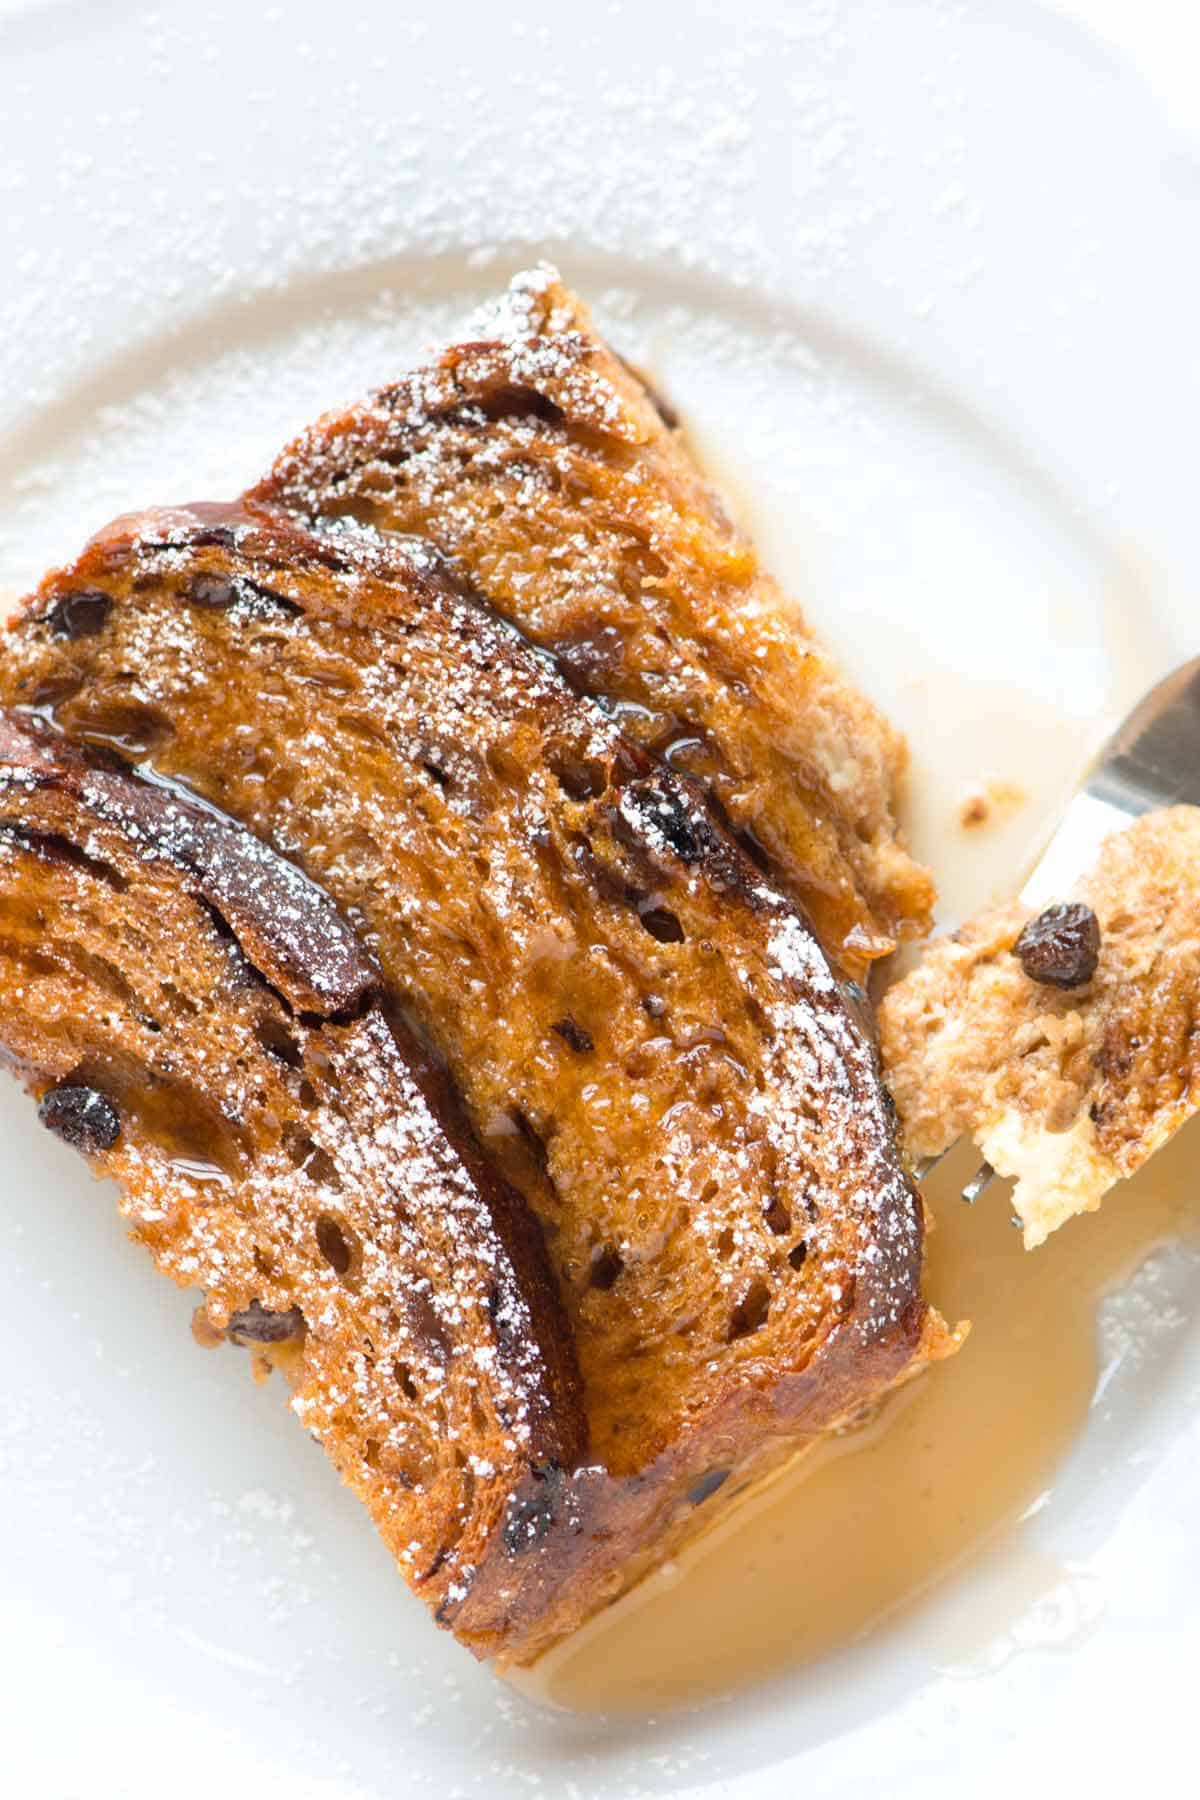 How to Make Cinnamon French Toast in the Oven